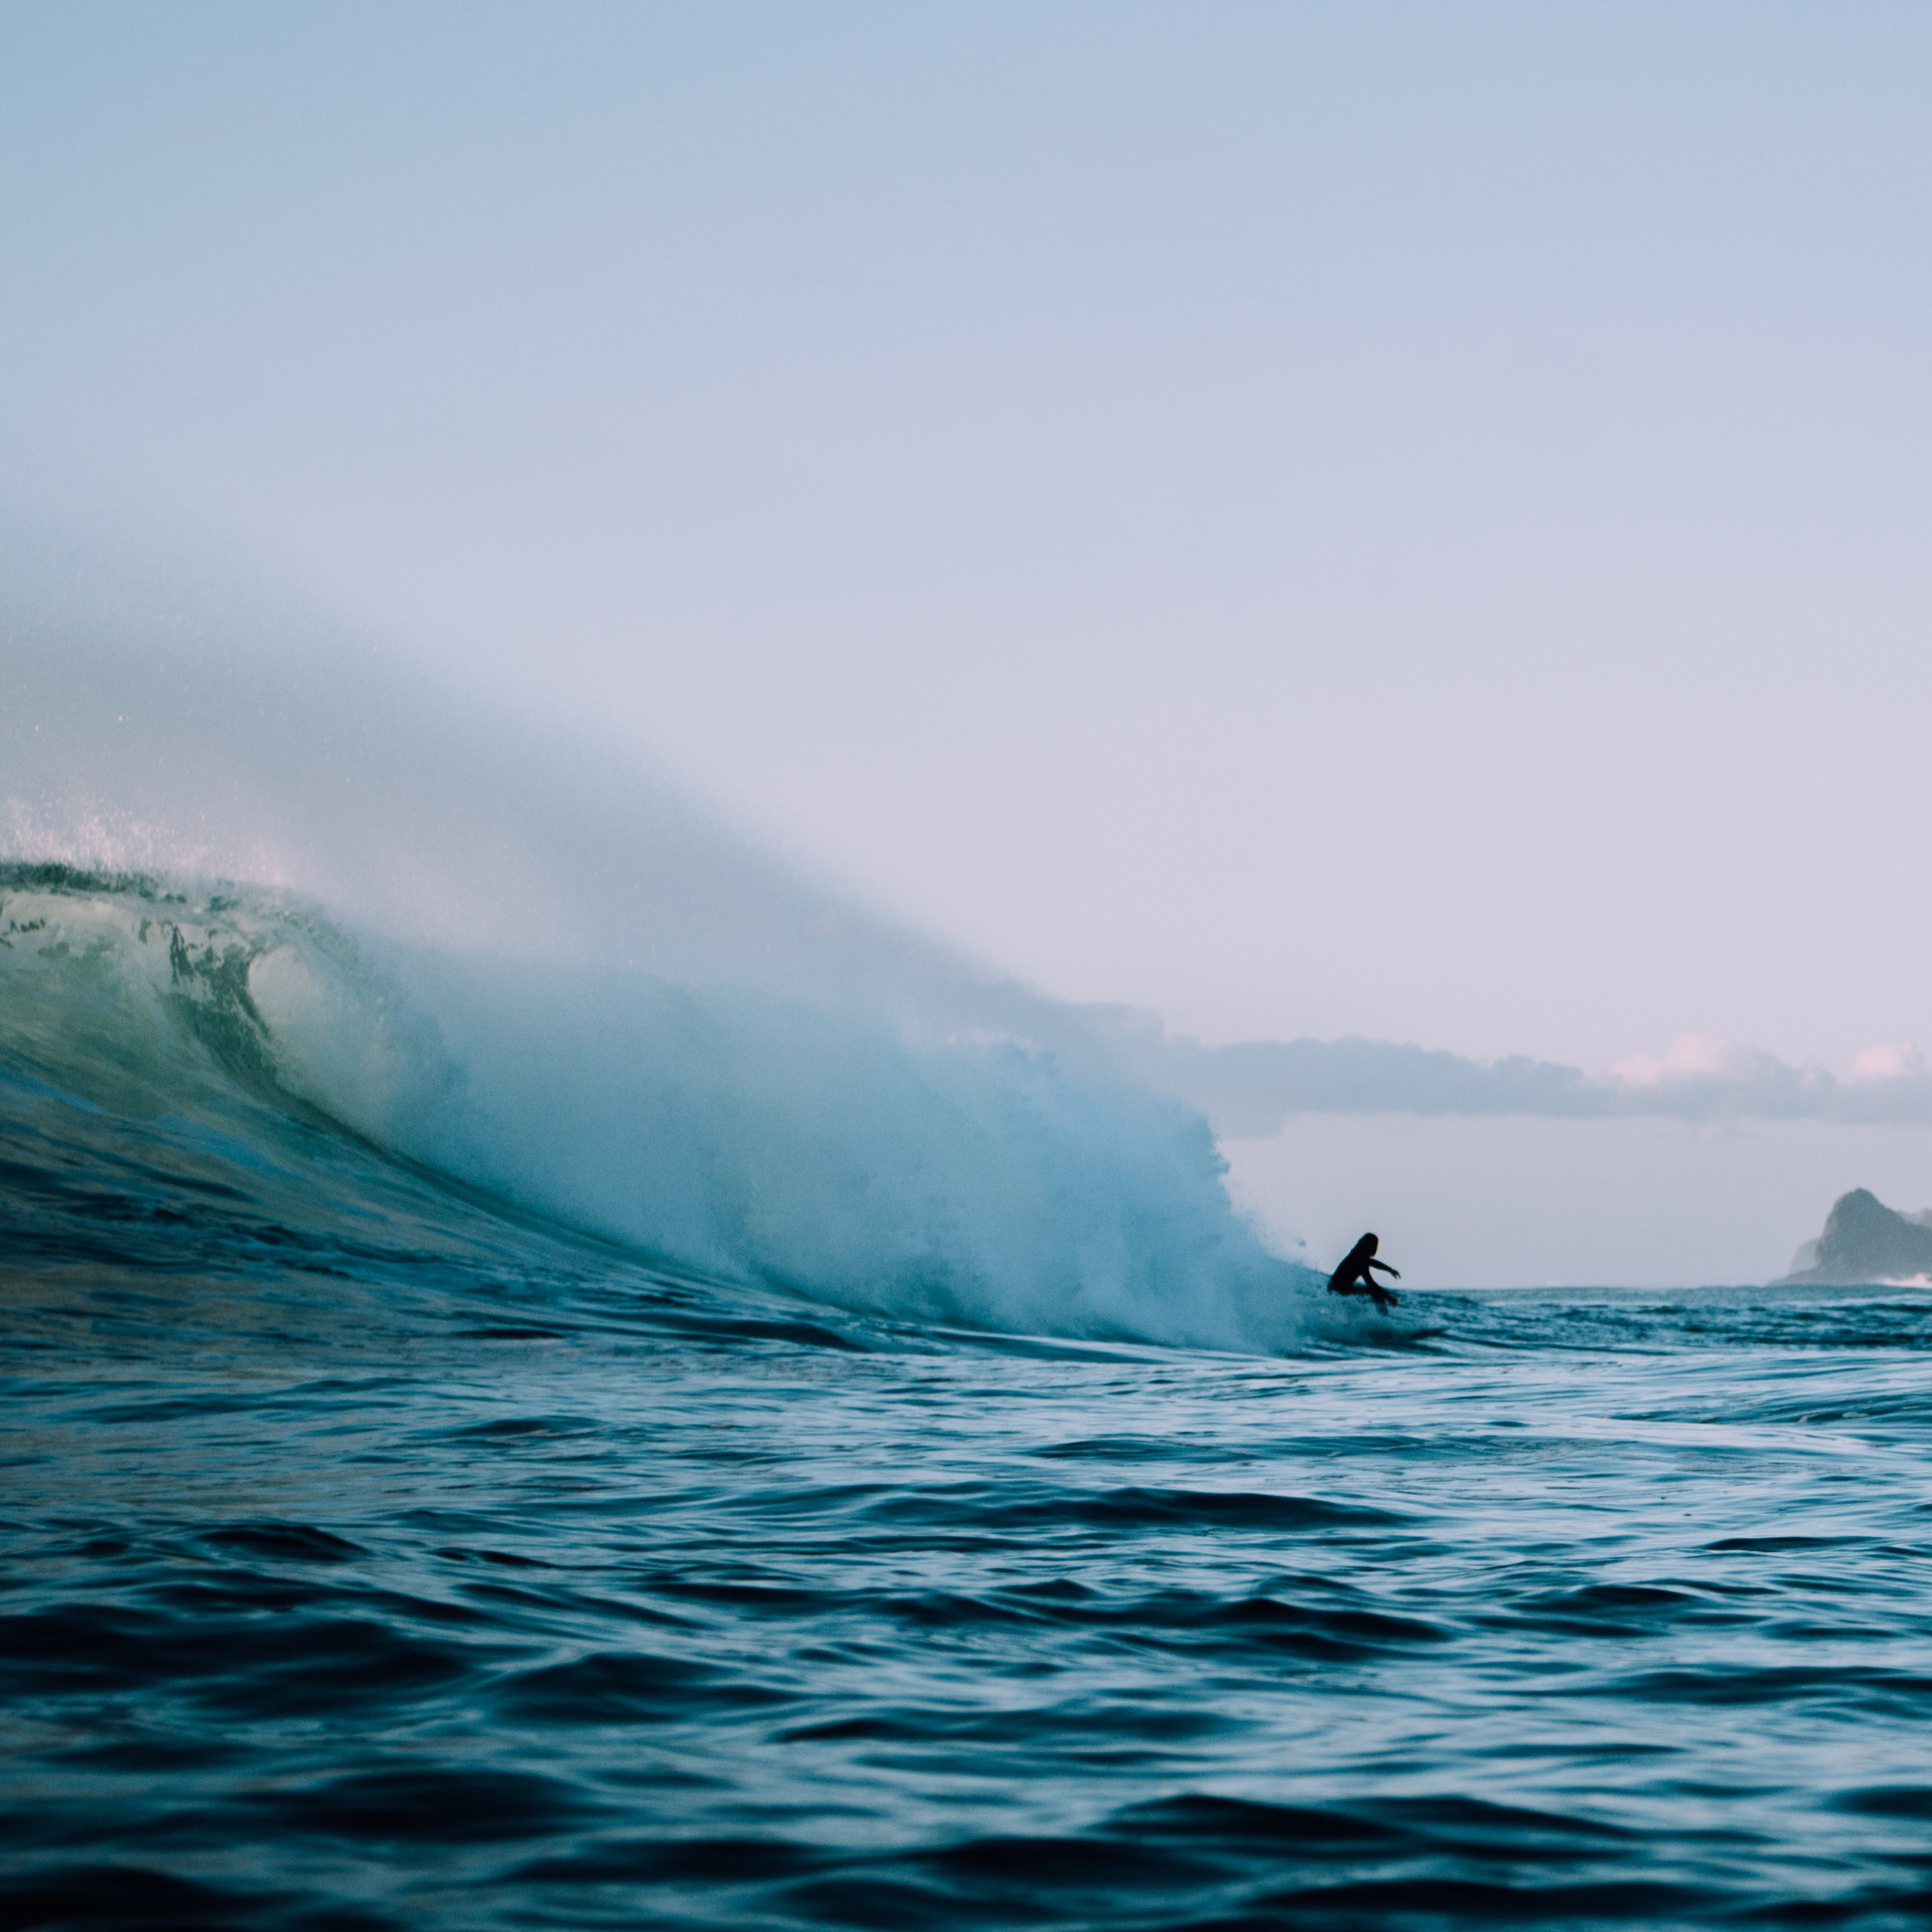 Surf in the warm PACIFIC ocean